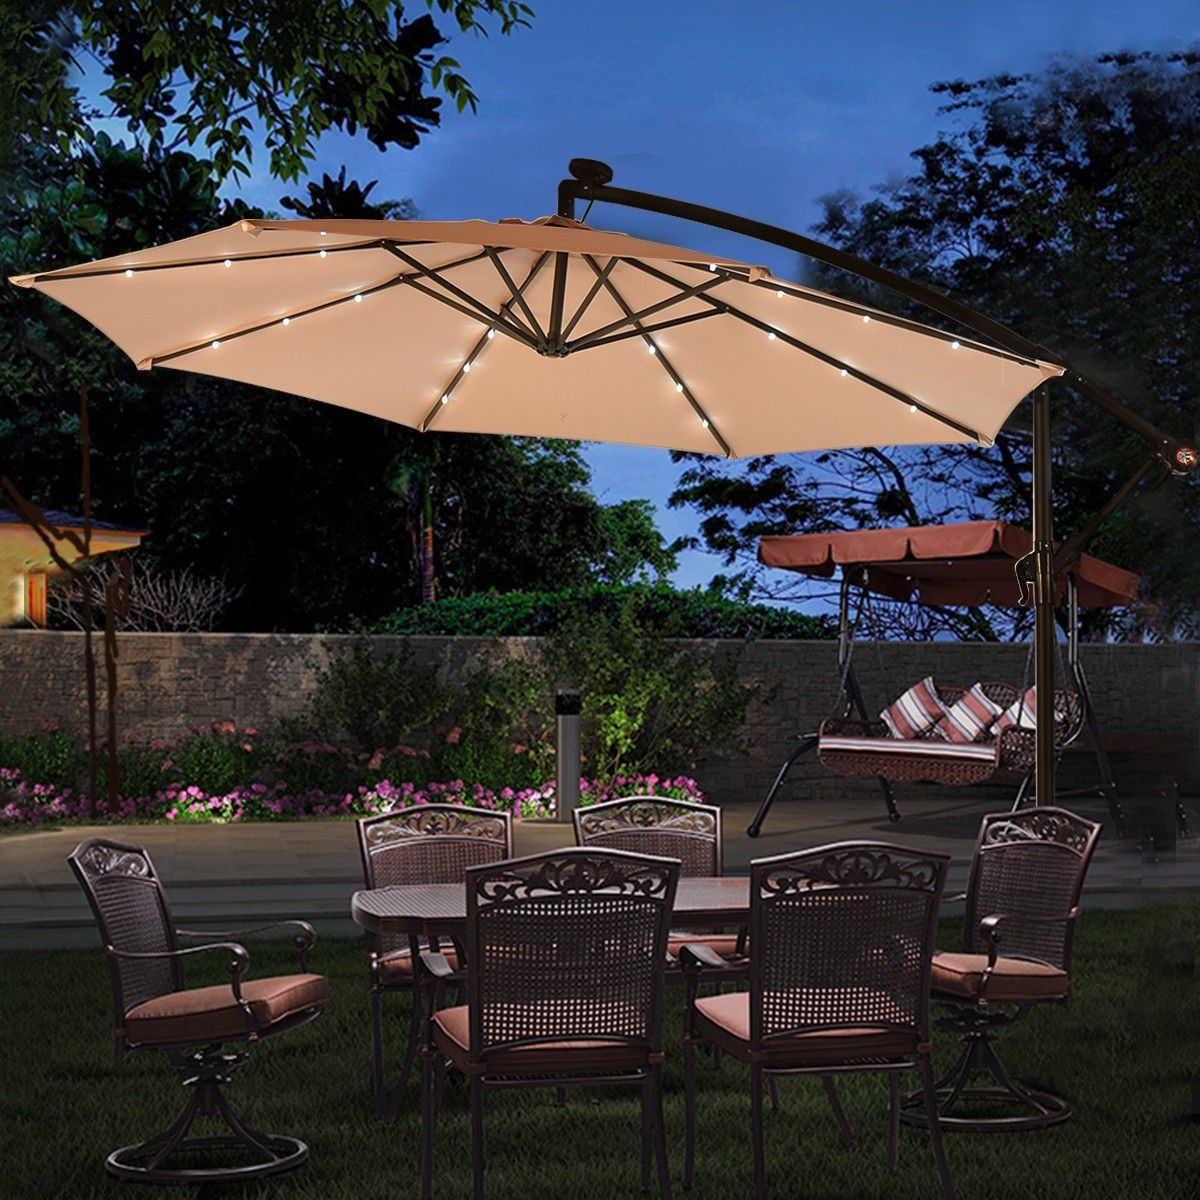 10 Patio Hanging Umbrella Sun Shade With Solar Led Lights Patio Shade Large Patio Umbrellas Best Patio Umbrella